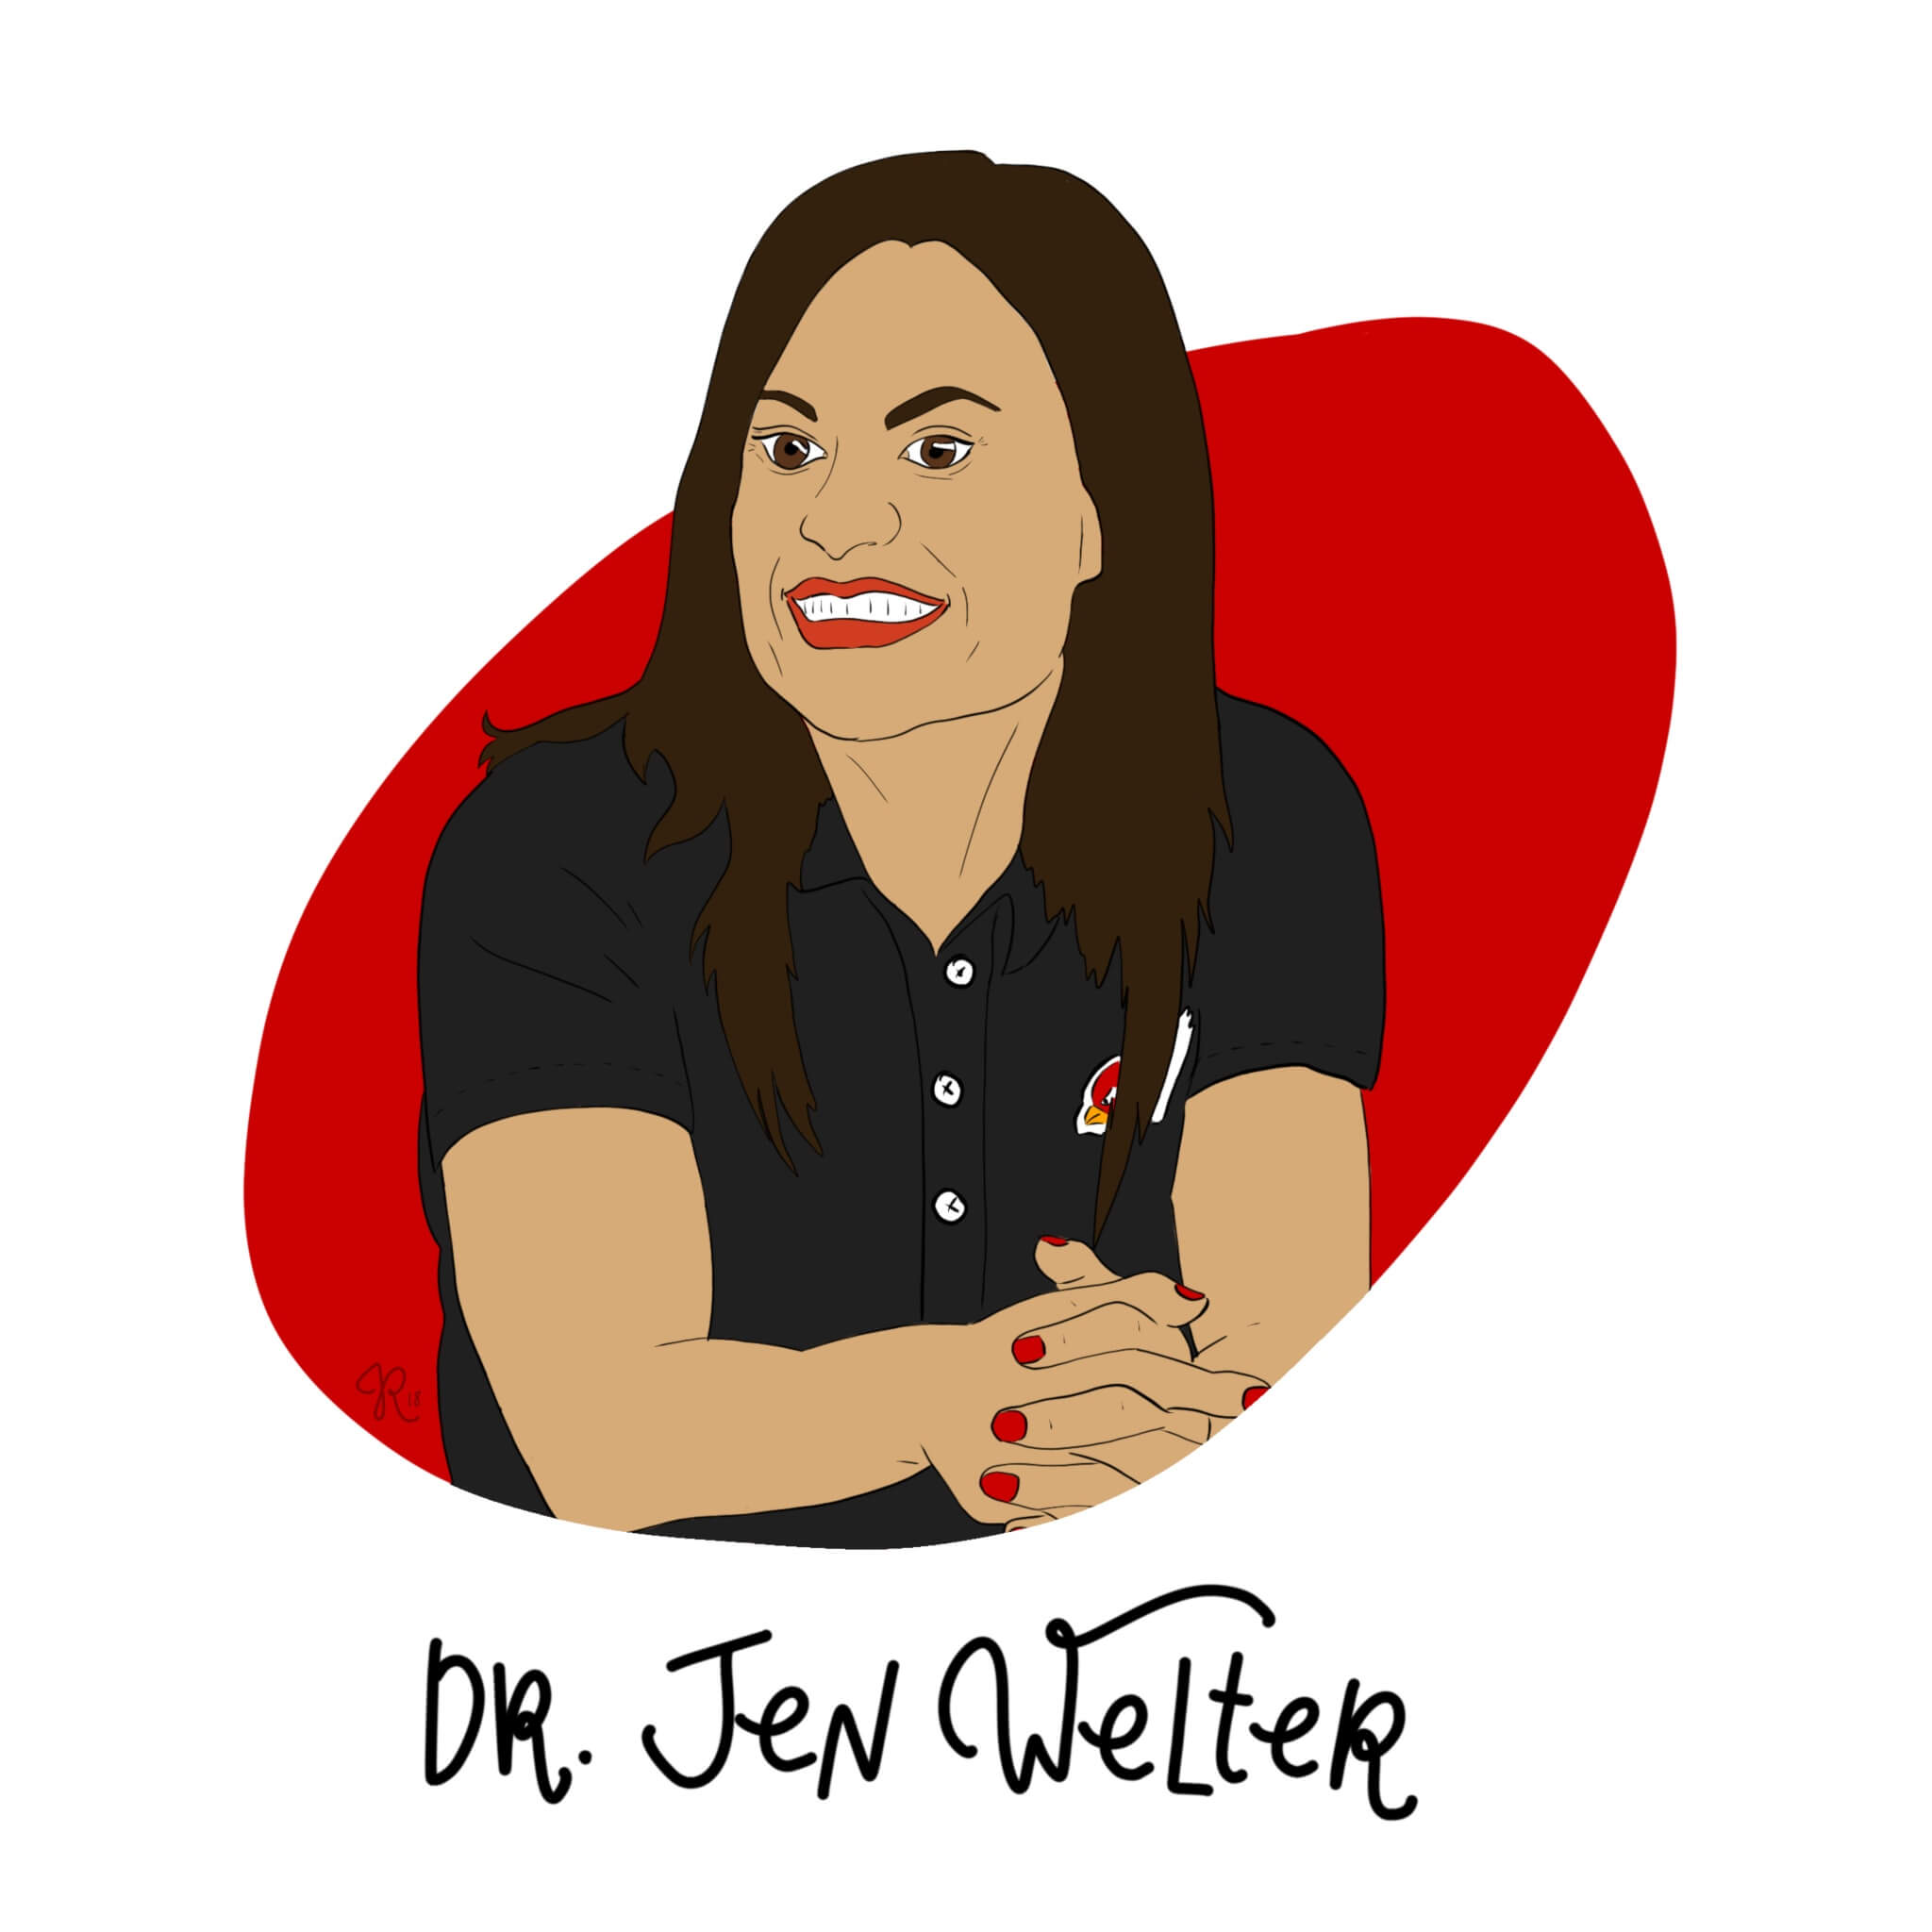 Dr. Jen Welter Illustration by Jessica Ringelstein